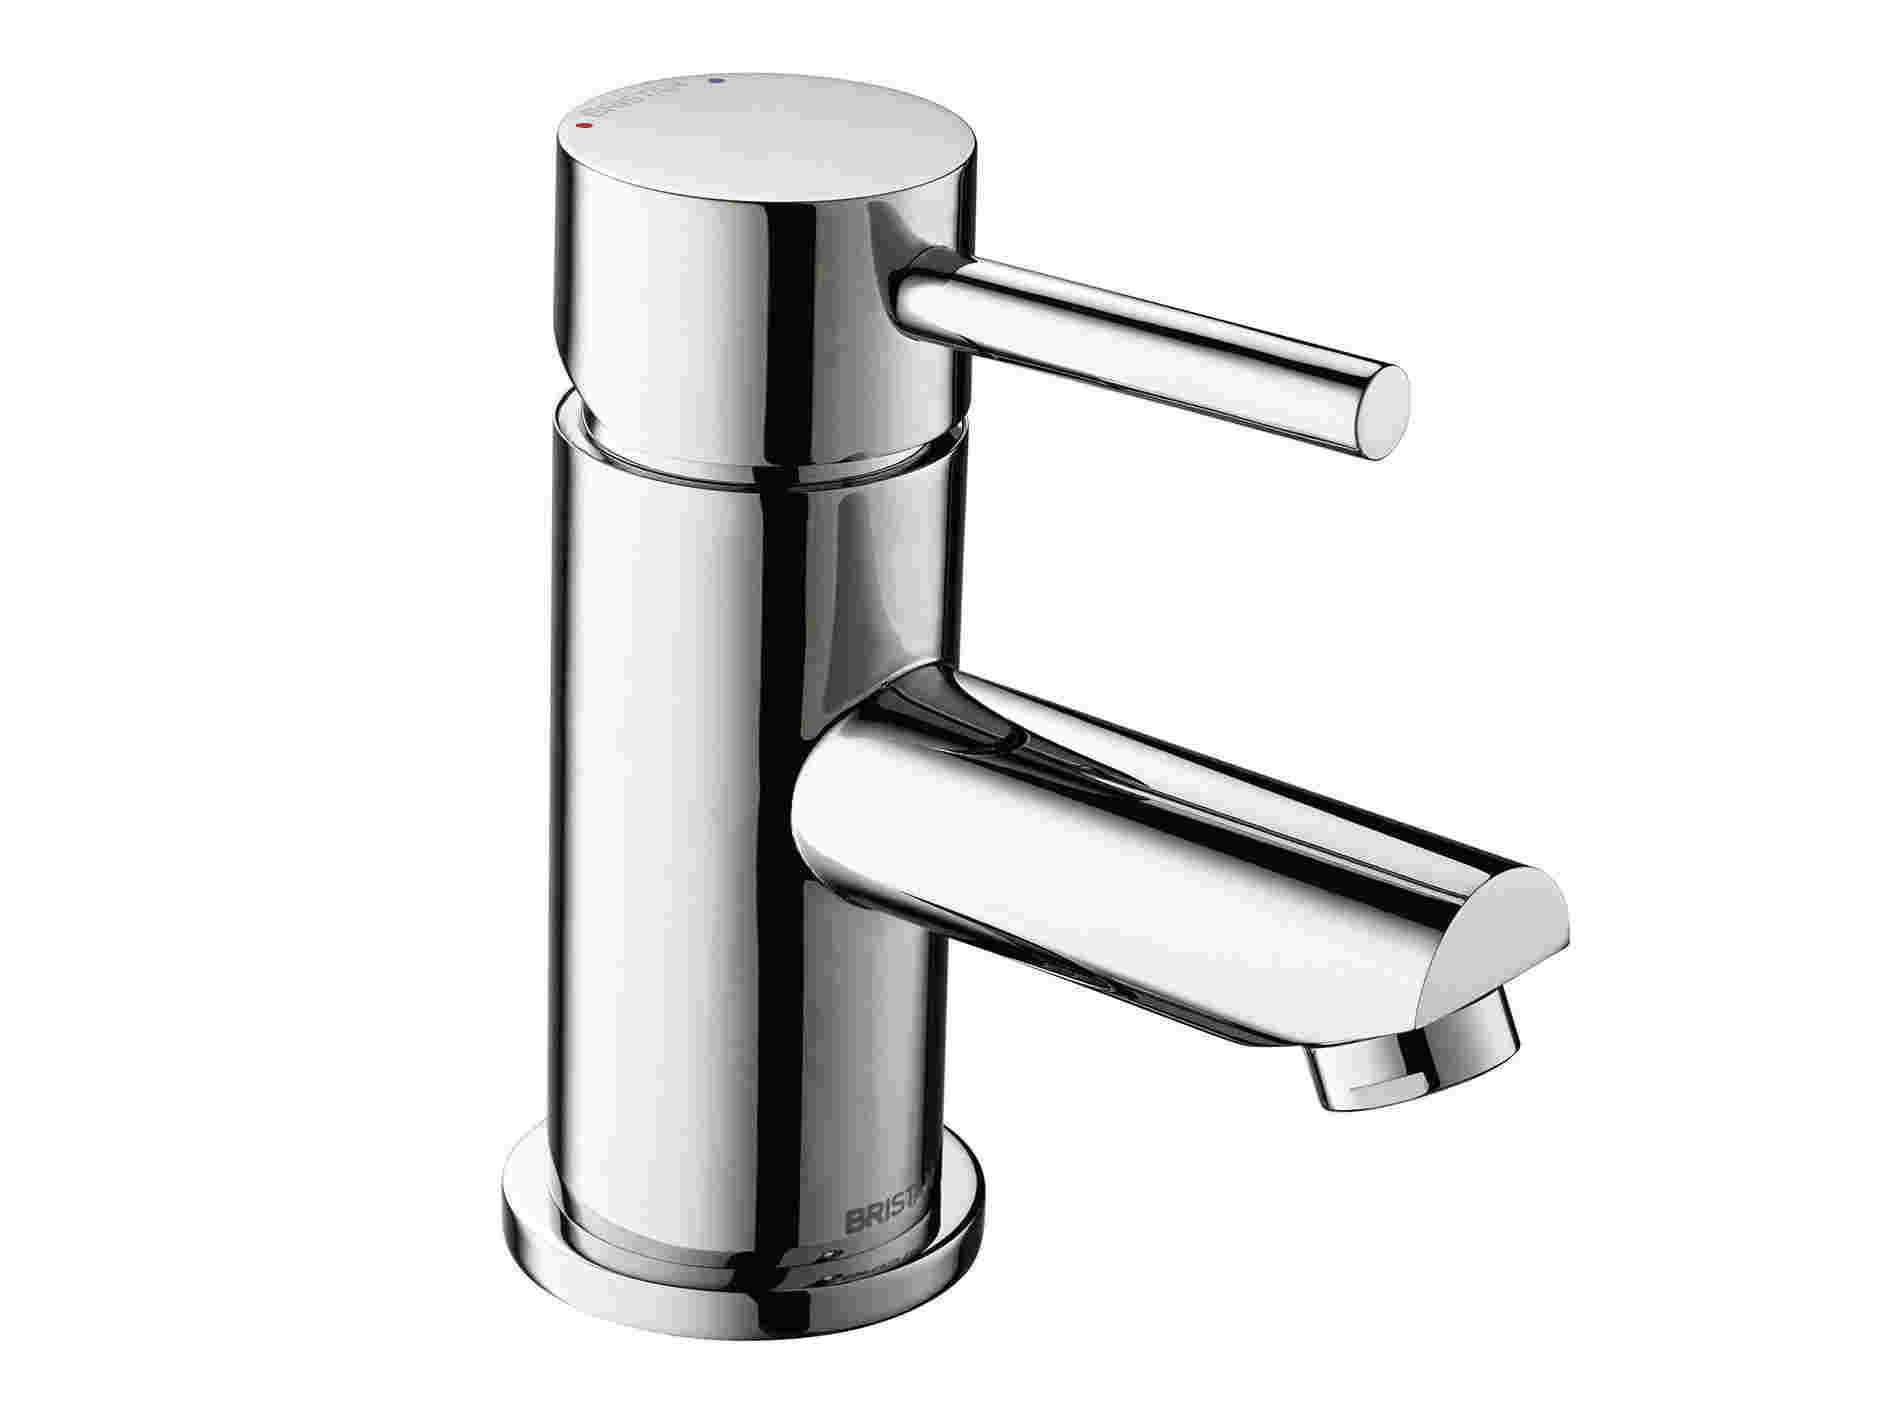 P Shape Shower Bath Basin Mixer Taps Free Delivery Thewhirlpoolbathshop Com